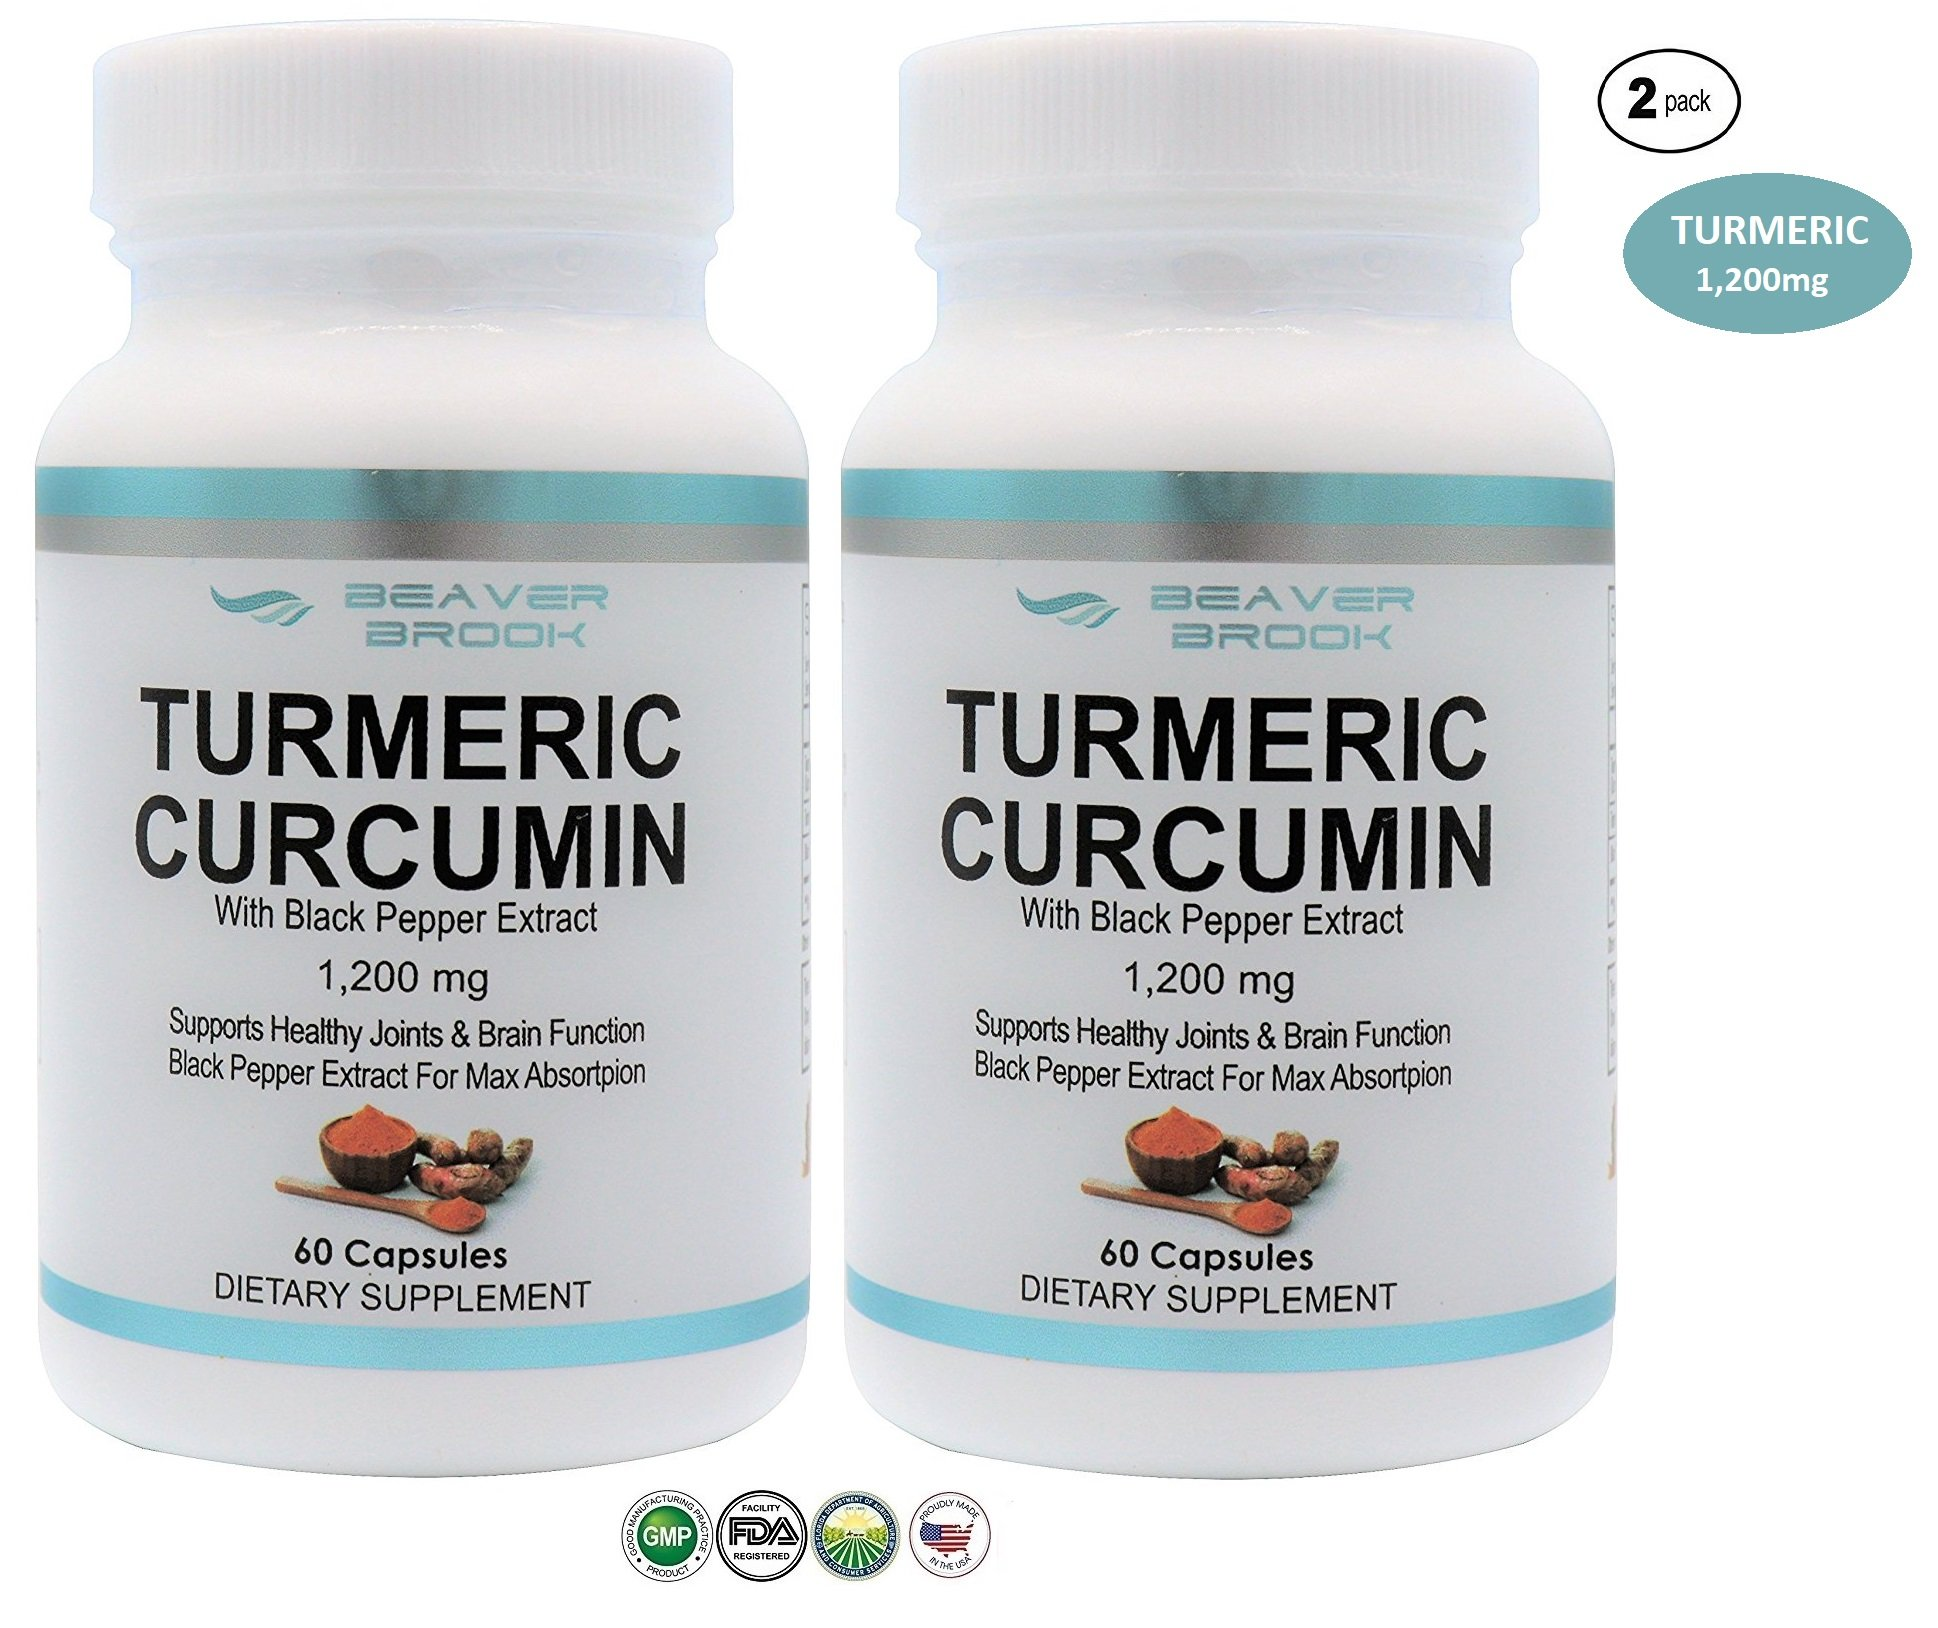 Beaver Brook All-Natural Turmeric Curcumin with Black Pepper Extract for Better Absorption 1,200mg Dietary Supplement Joint Pain Relief, Anti-Inflammatory, Made in USA & Non-GMO - 120 Capsules